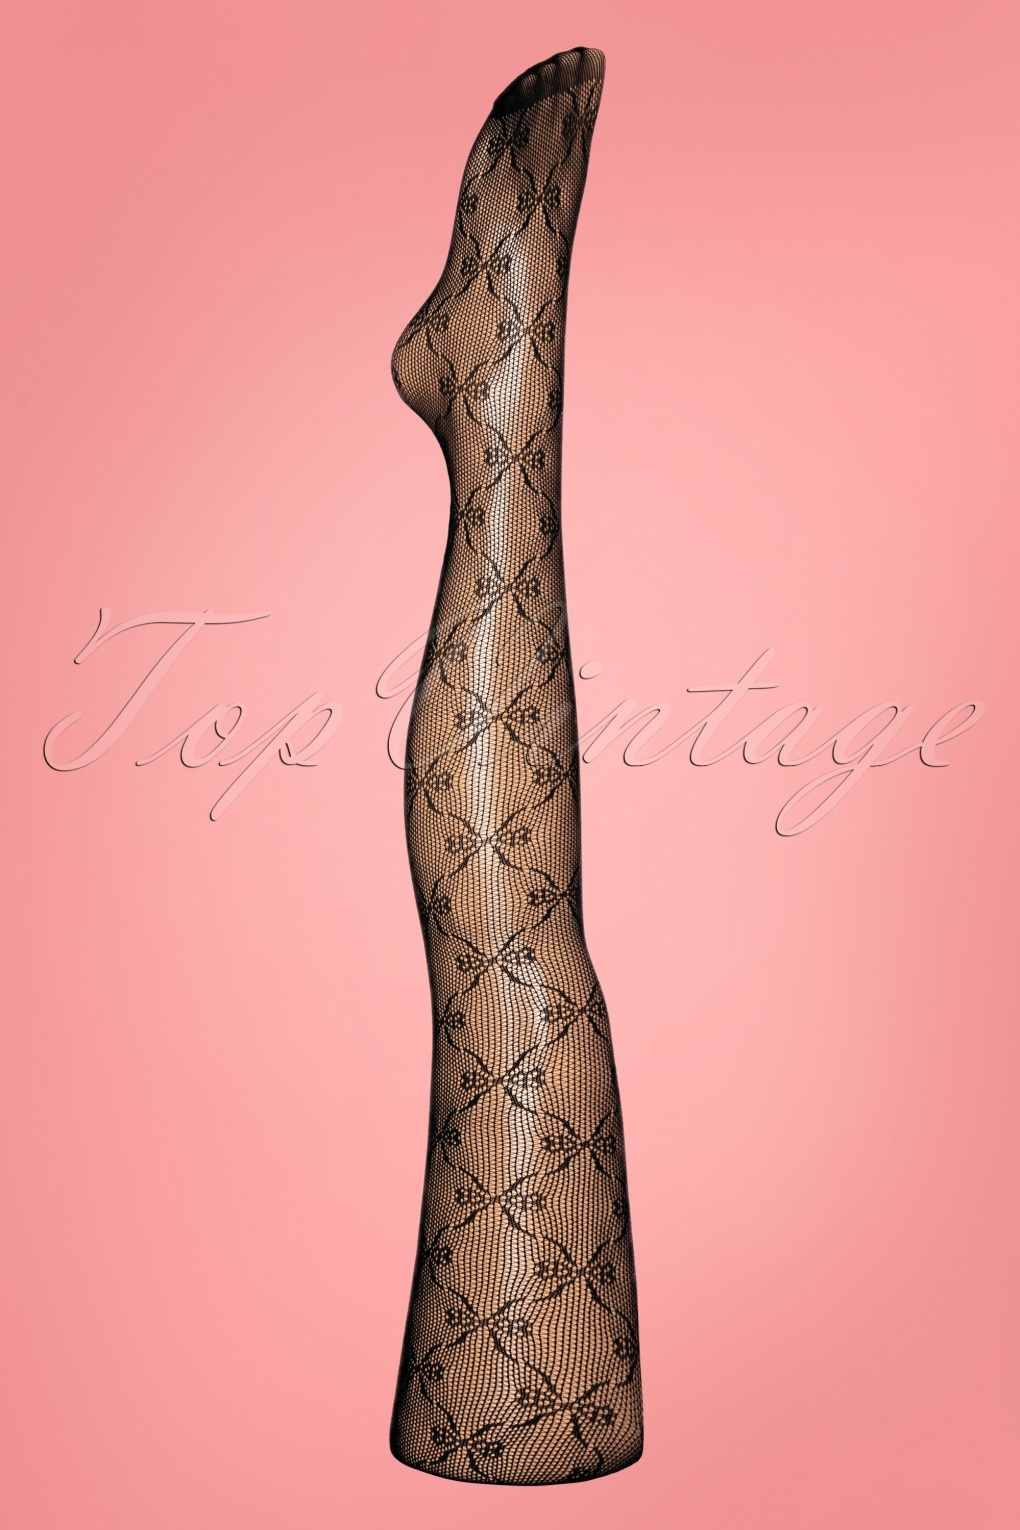 1960s Tights, Stockings, Panty Hose, Knee High Socks 60s Diamond Whirl Mesh Tights in Black £7.24 AT vintagedancer.com